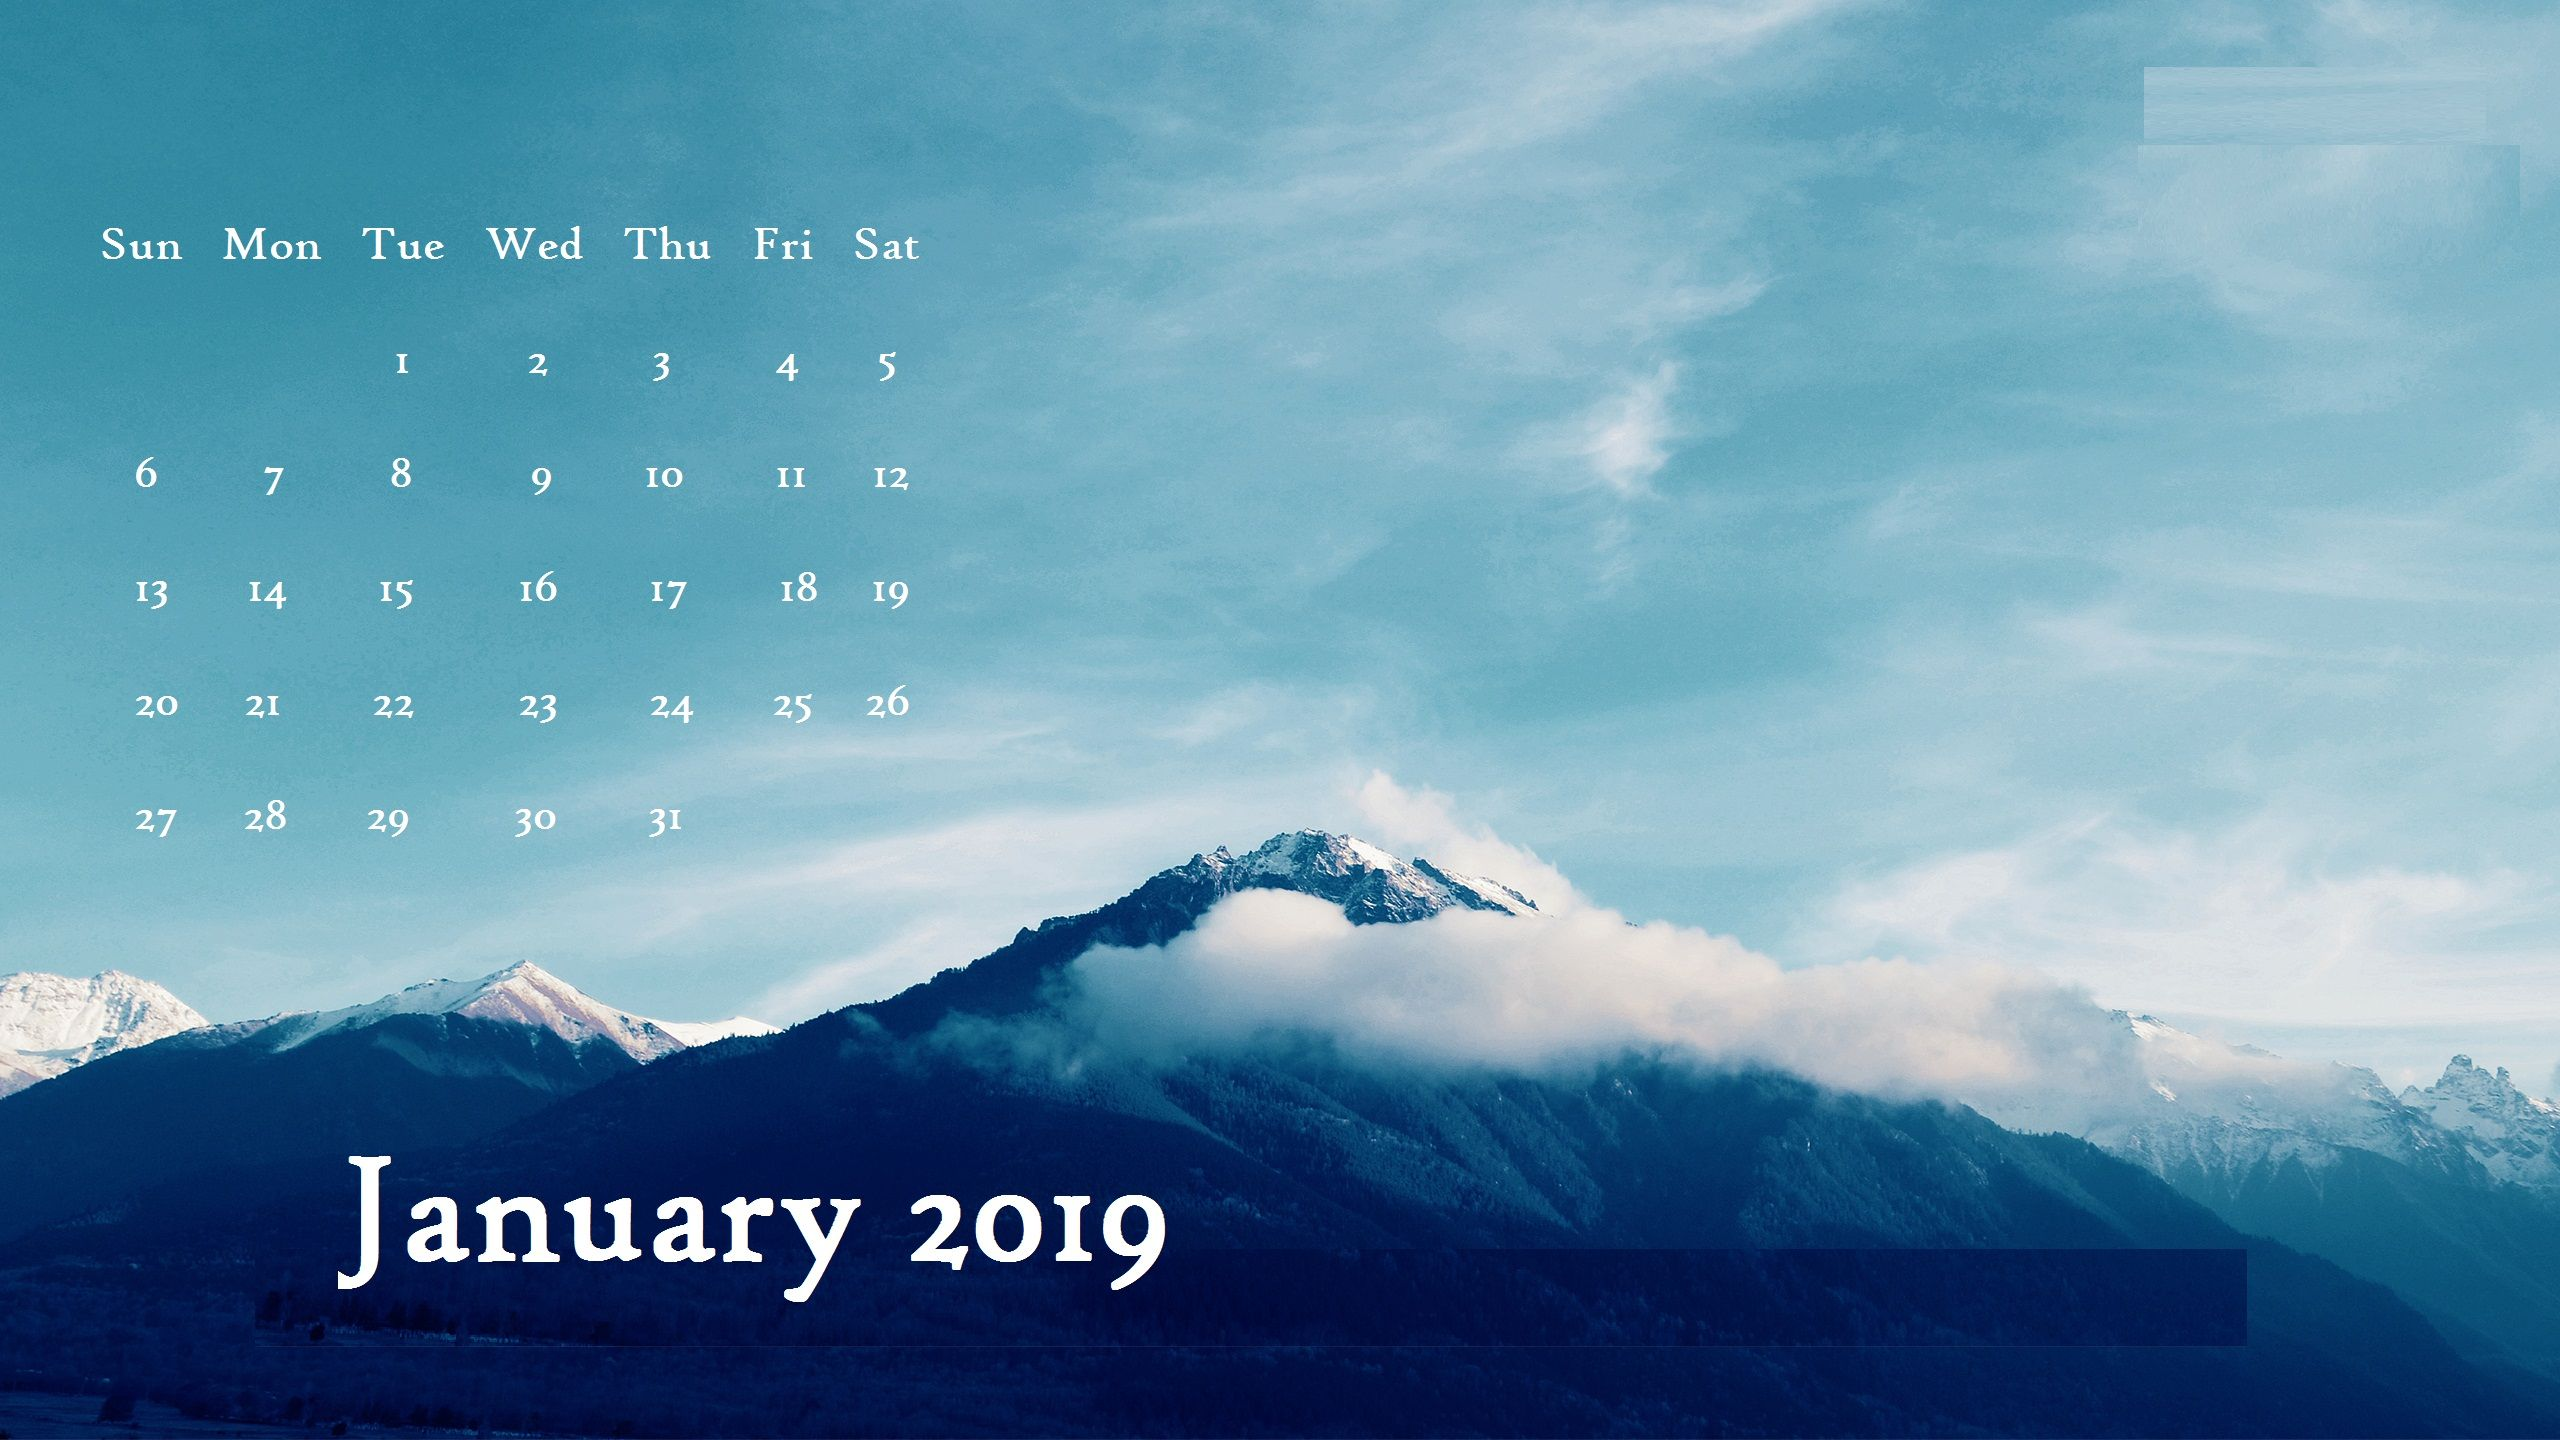 January 2019 Desktop Calendar Wallpaper Max Calendars